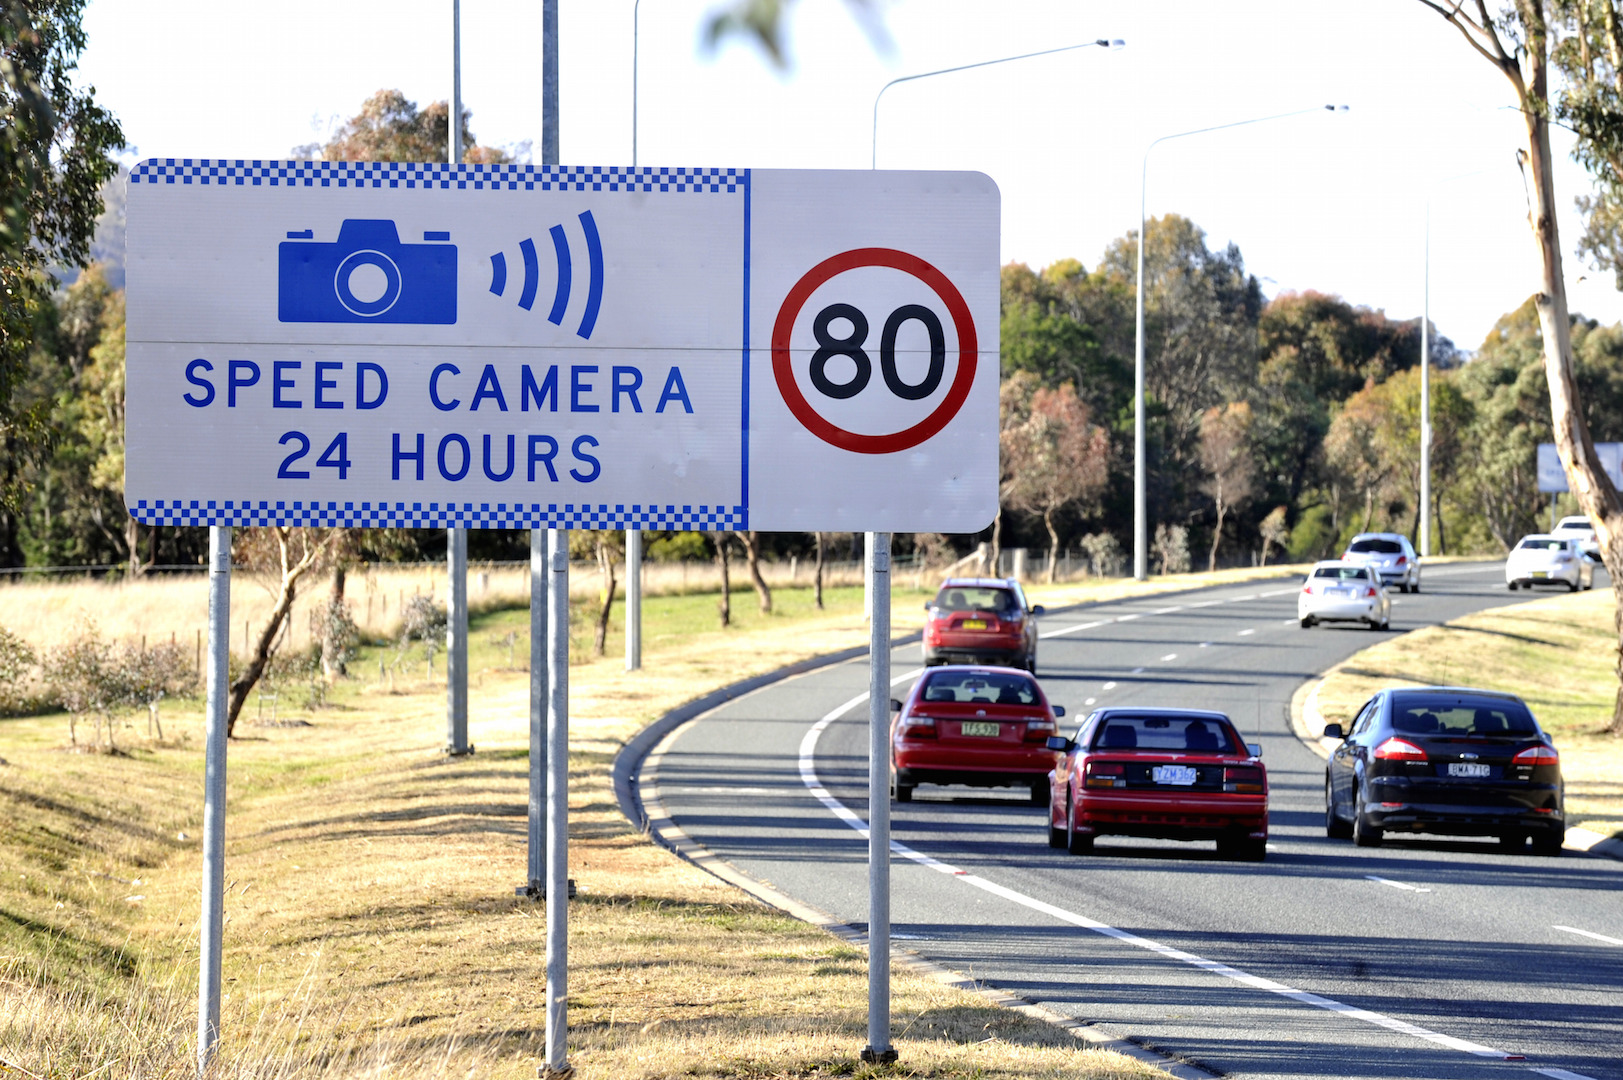 Speeding: The piece of technology that can save lives